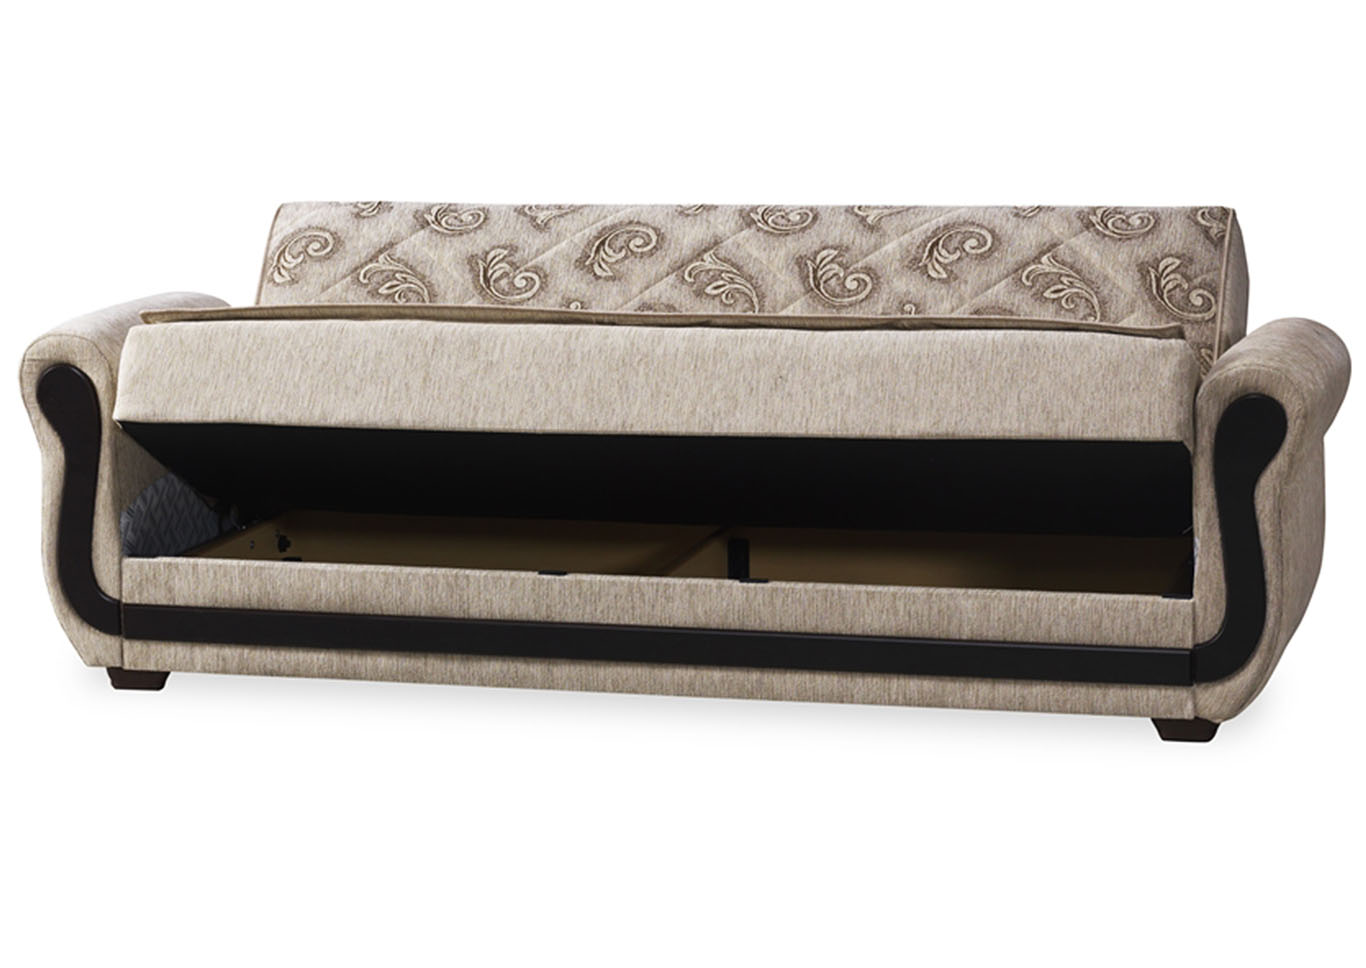 Maddox Cream Sofabed,CasaMode Functional Furniture